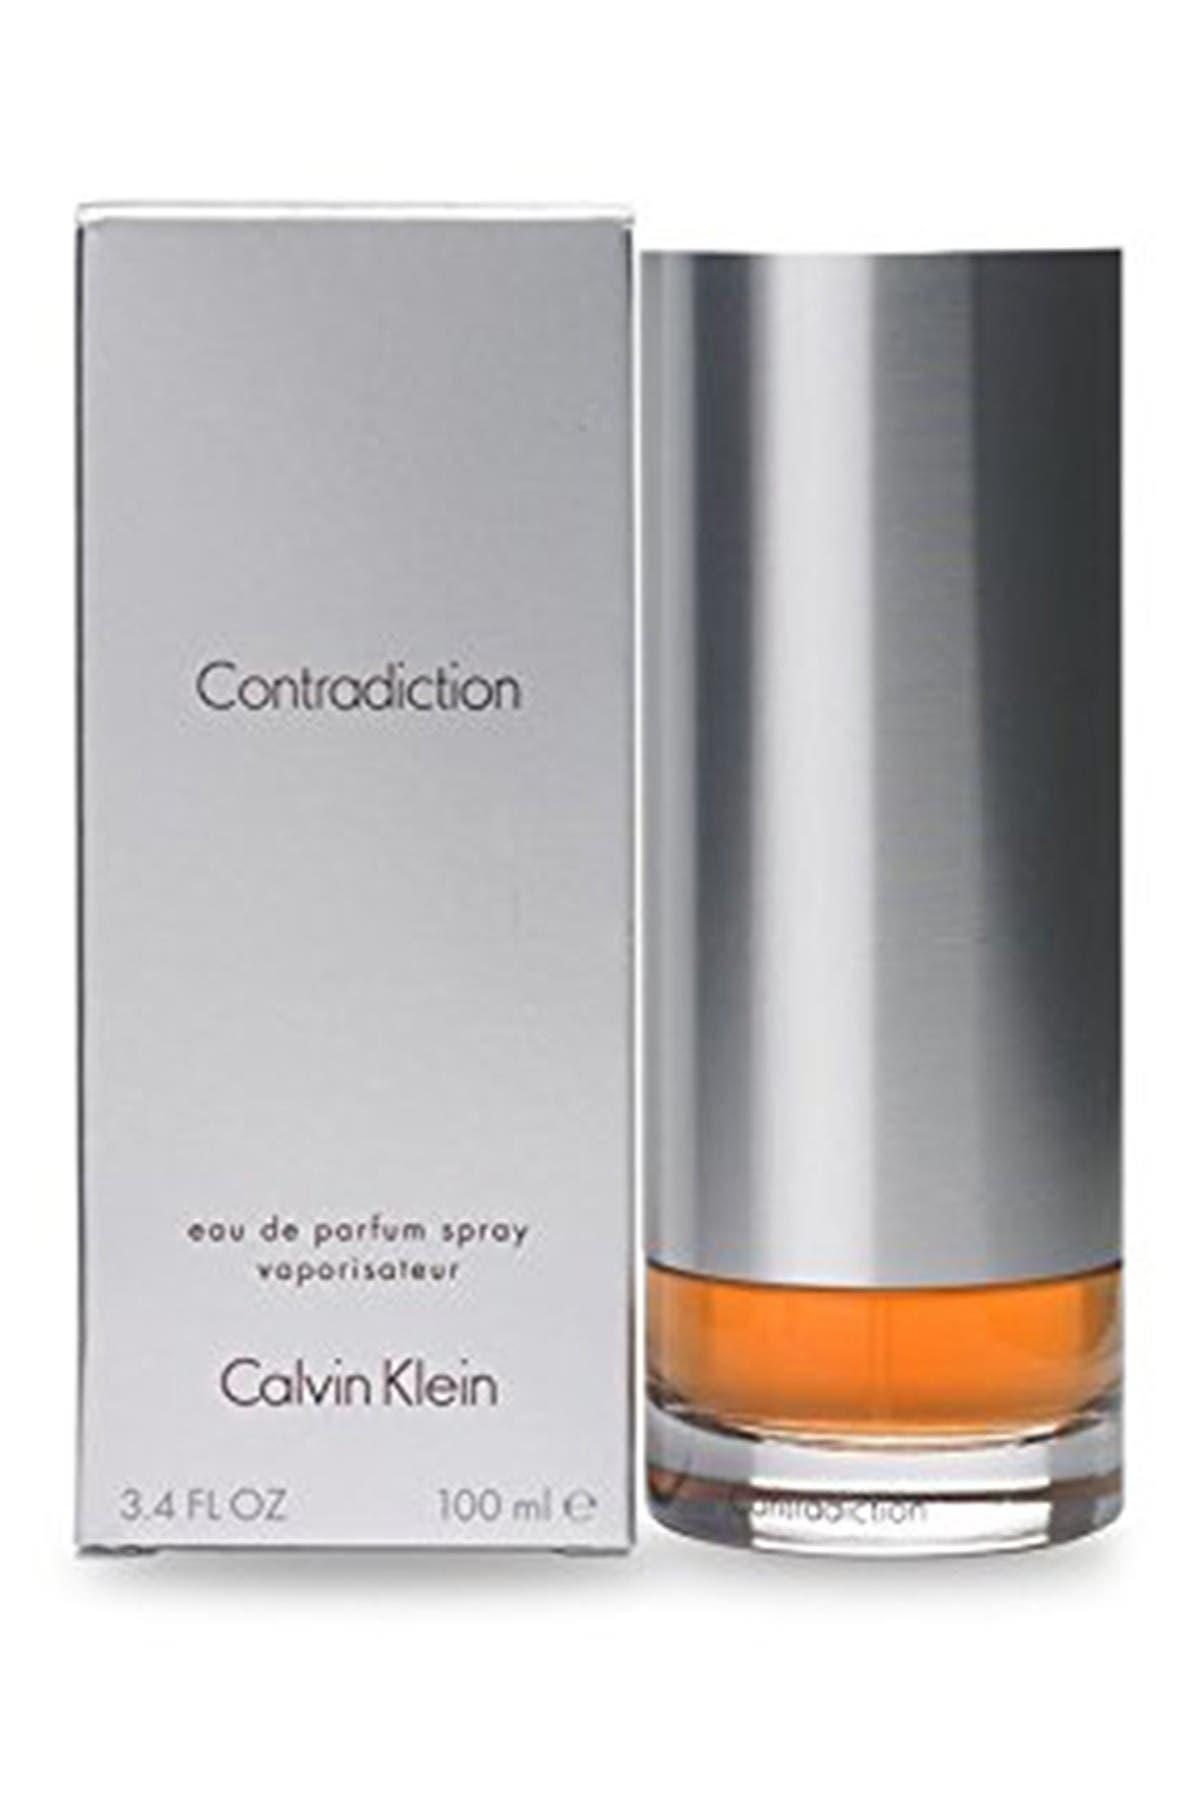 Image of Calvin Klein Contradiction Eau de Parfum - 100ml.